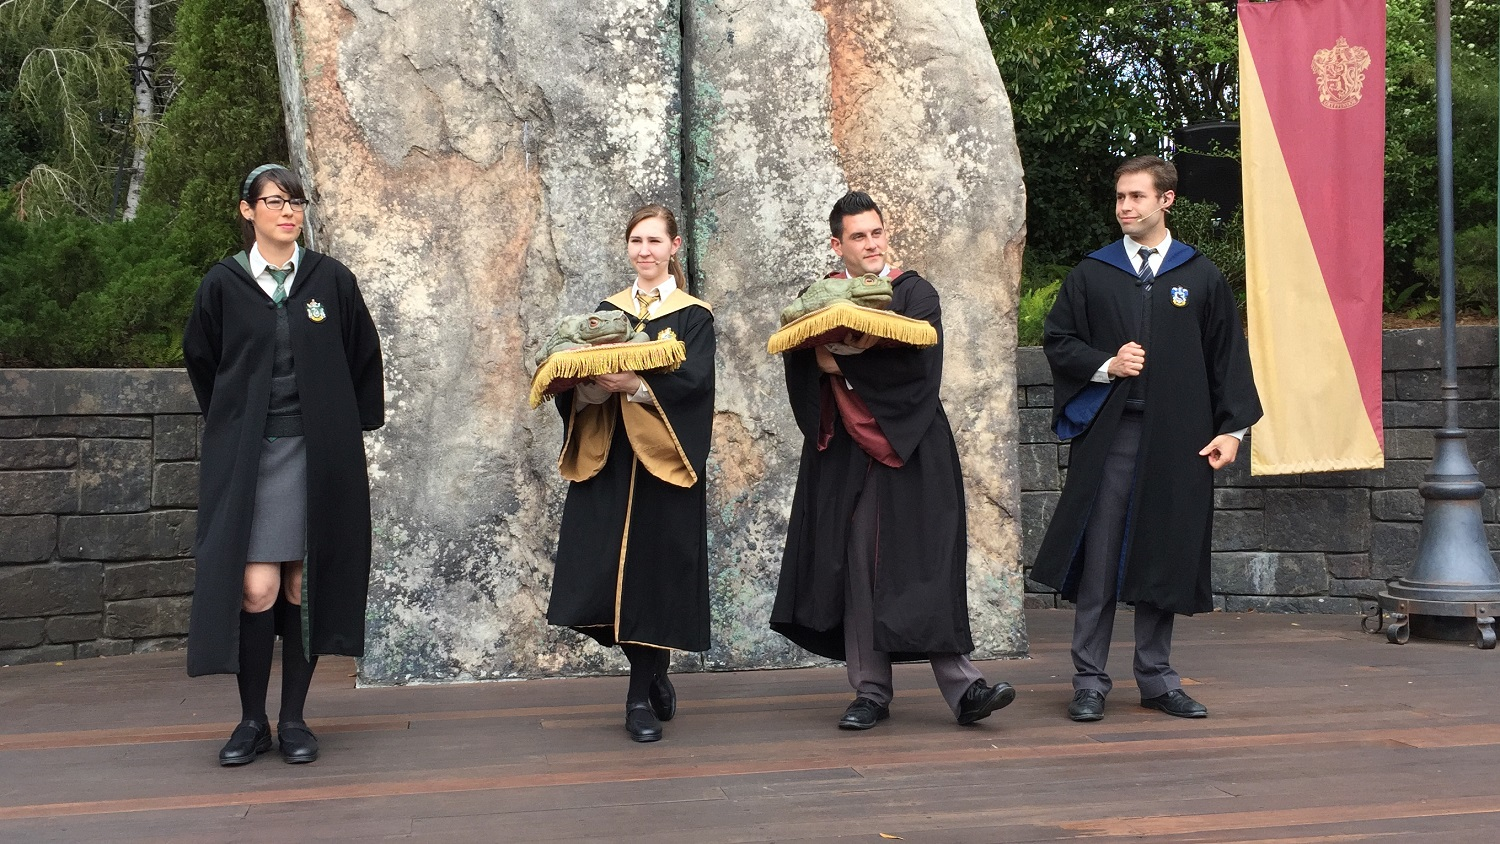 The Frog Choir also performs on the Hogsmeade stage.